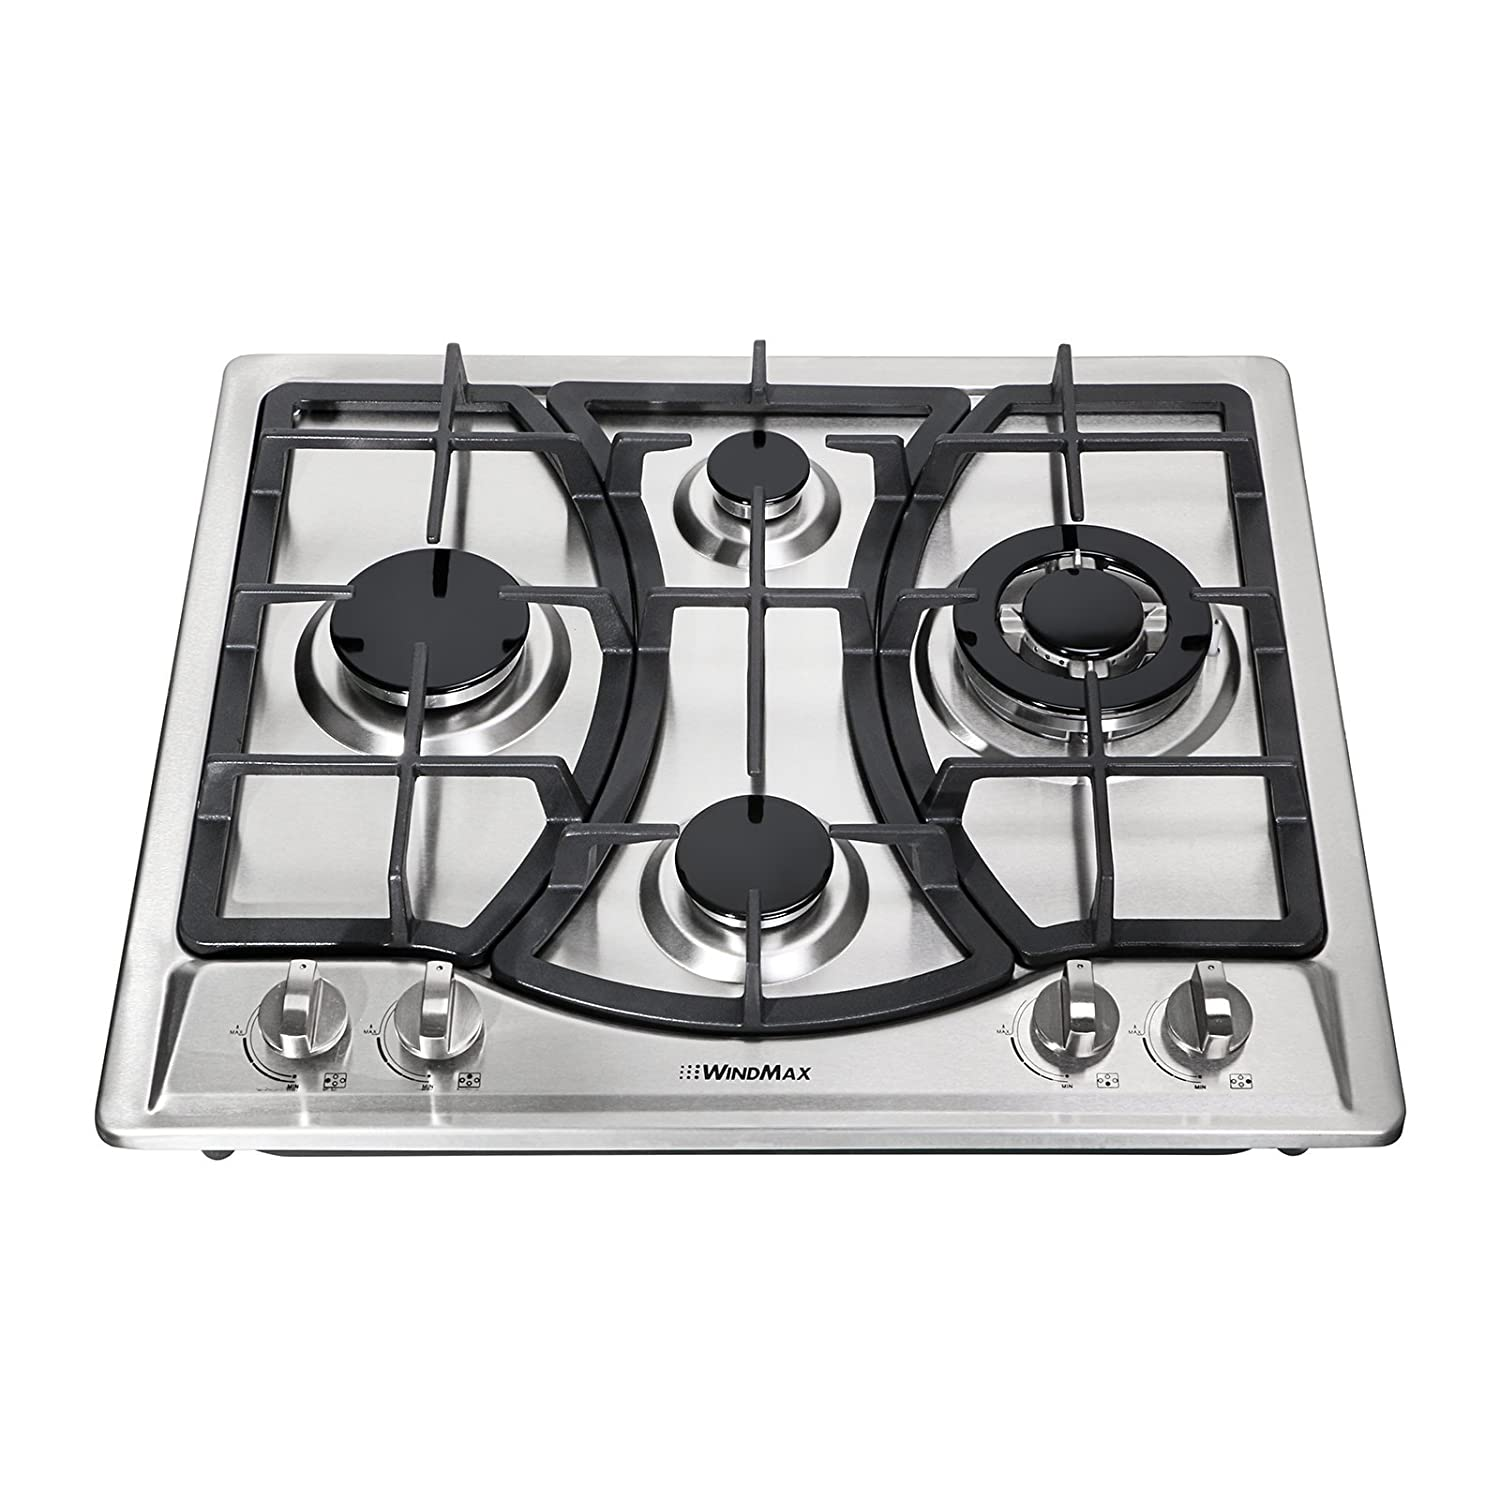 Windmax 23 Curve Stainless Steel 4 Burner Stove NG/LPG Hob Cooktops Cooker 46013